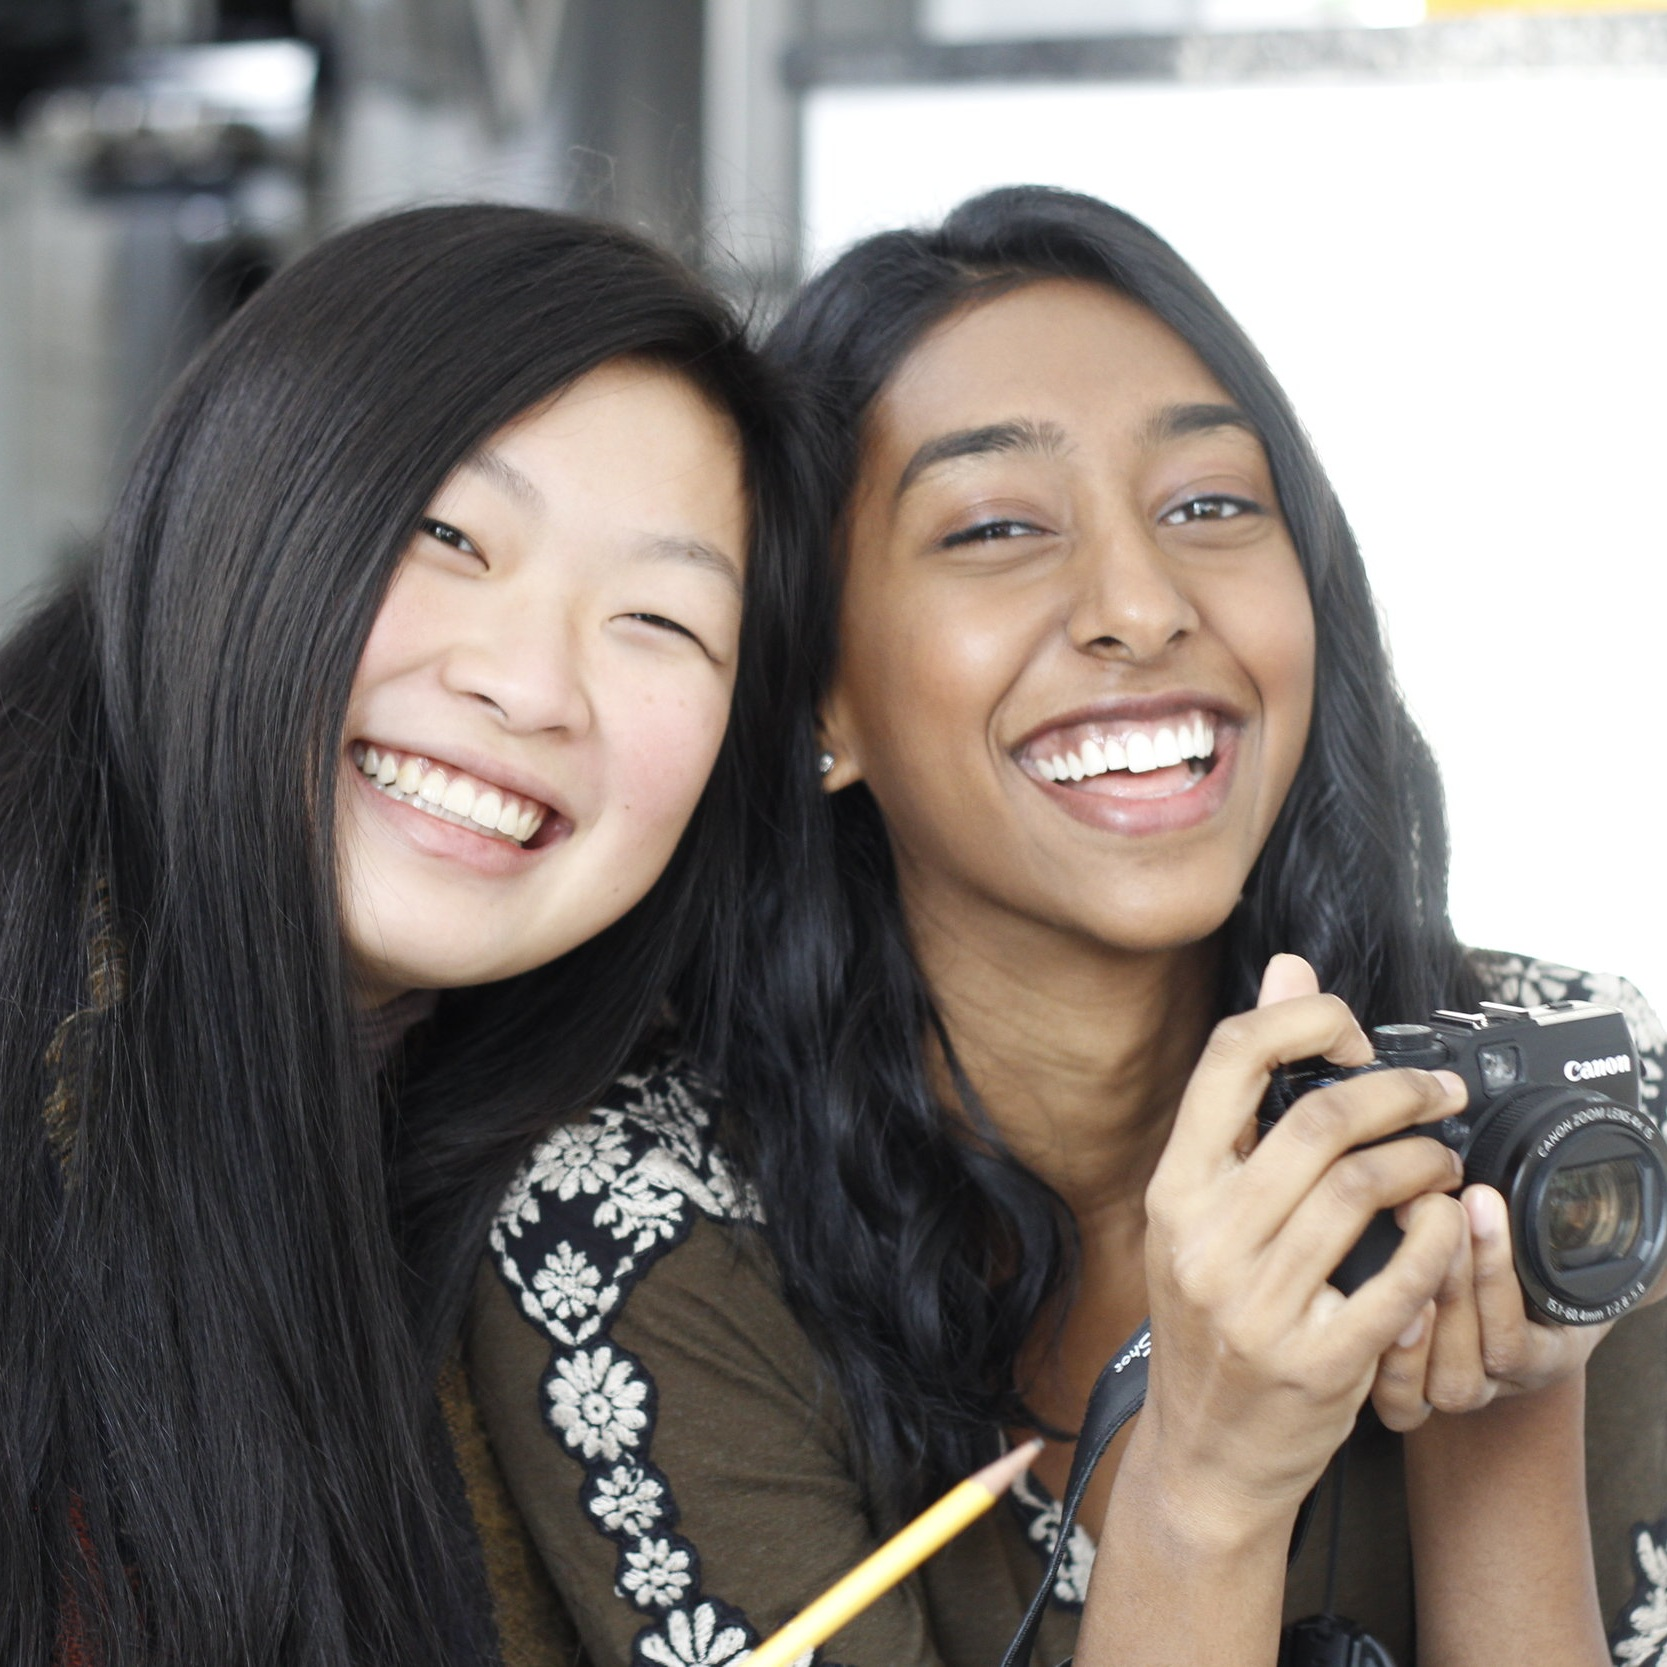 Priya Vulchi and Winona Guo are smiling at the camera. They both have long black hair and one of them is holding a camera.